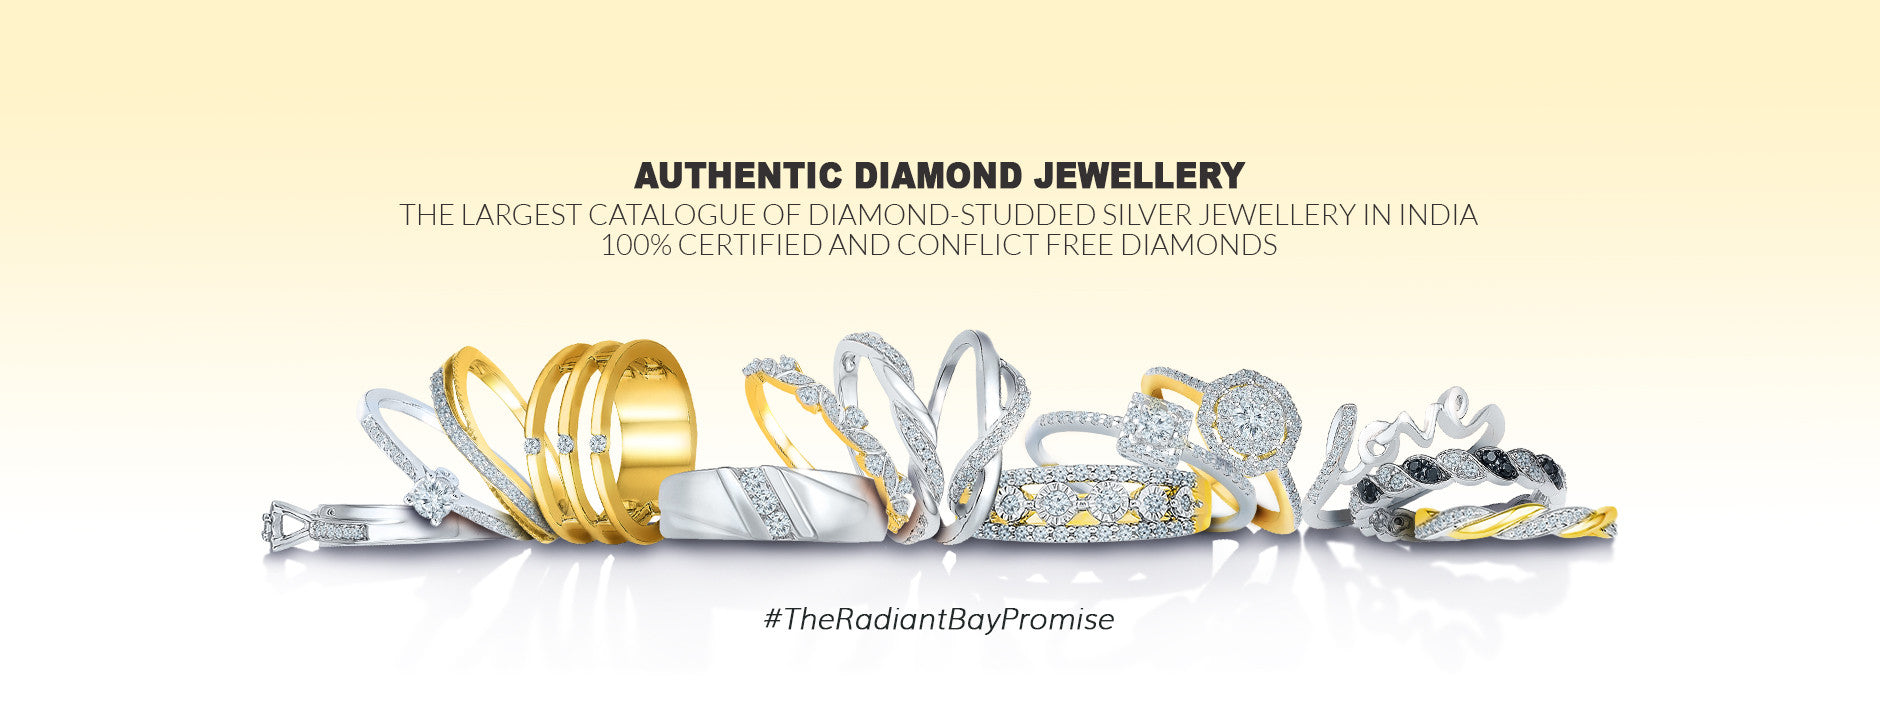 Authentic Diamond Jewellery